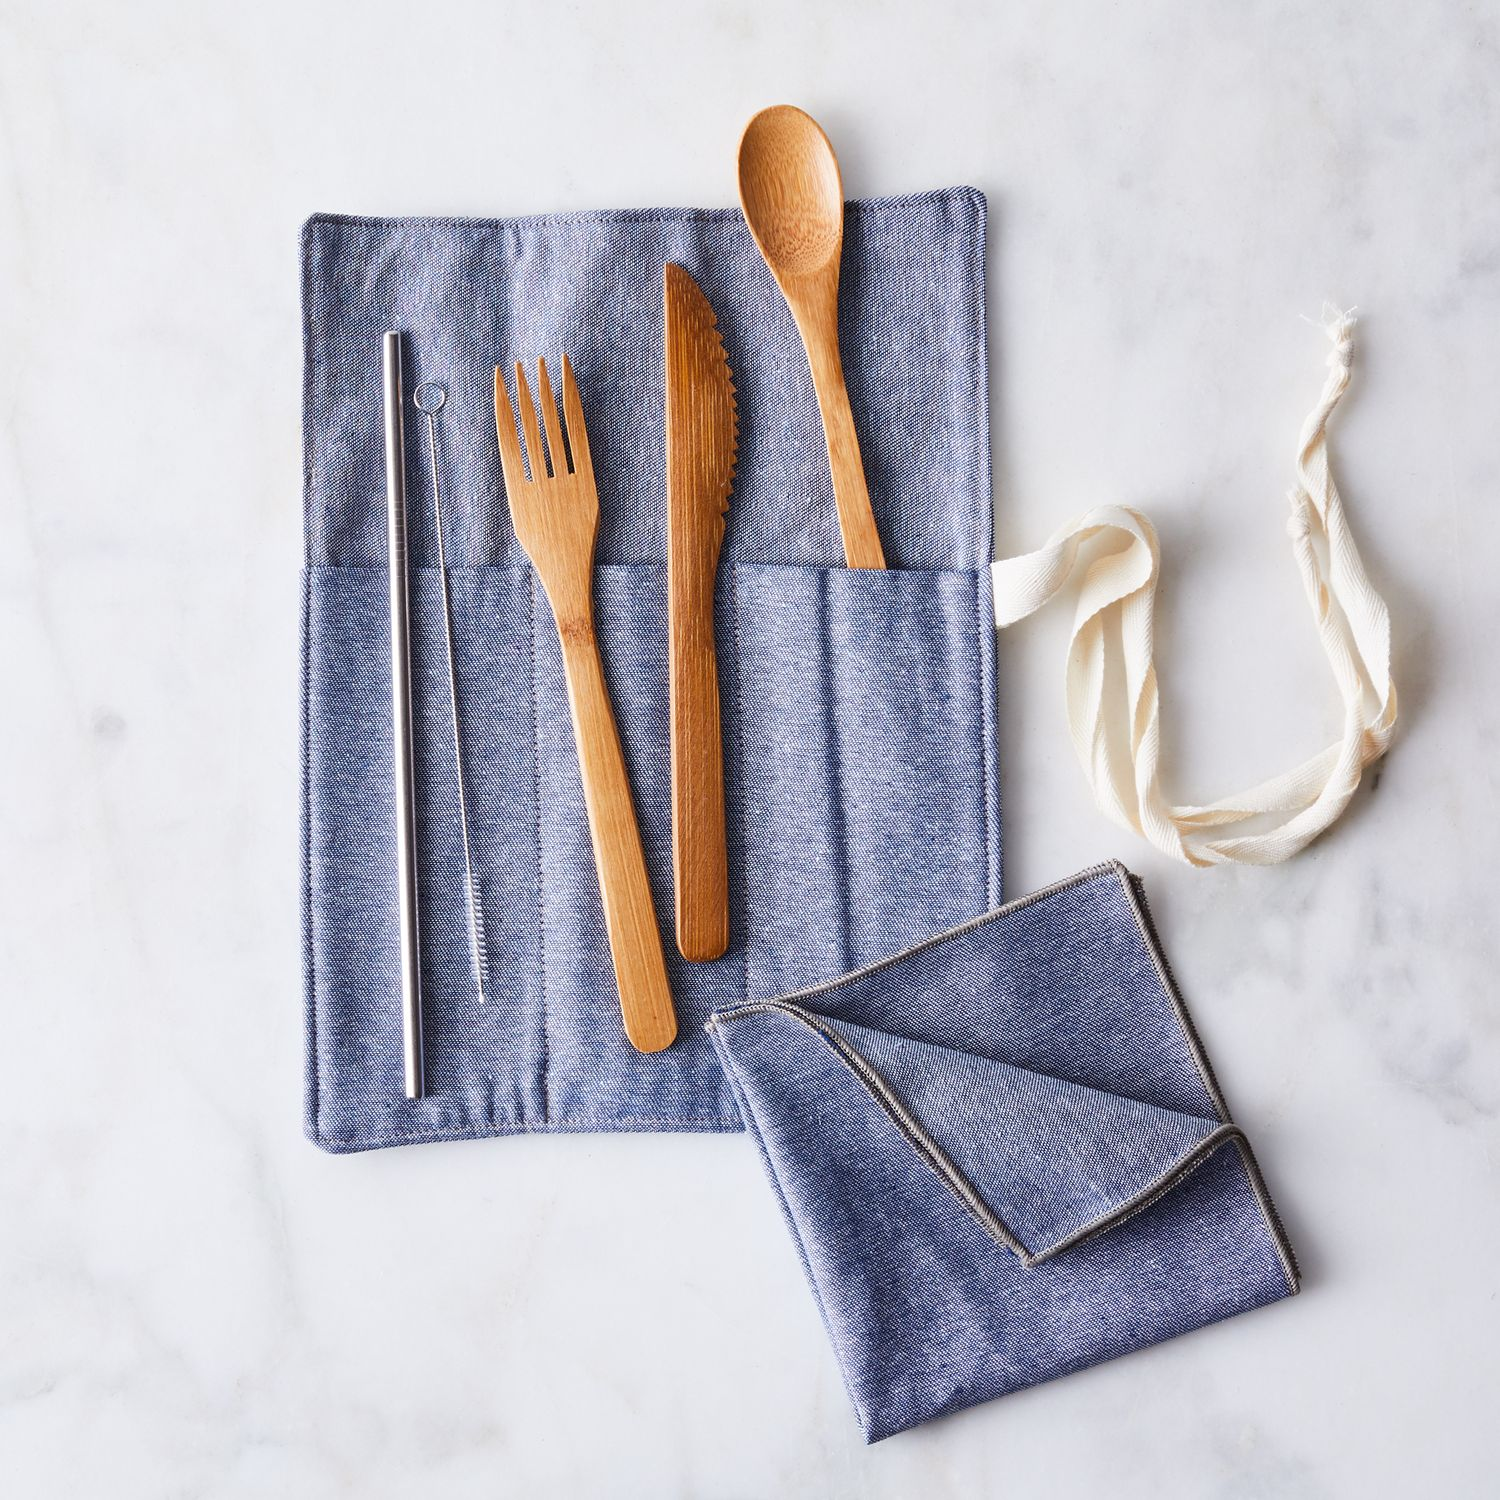 Reusable Bamboo Utensils Amp Wrap On Food52